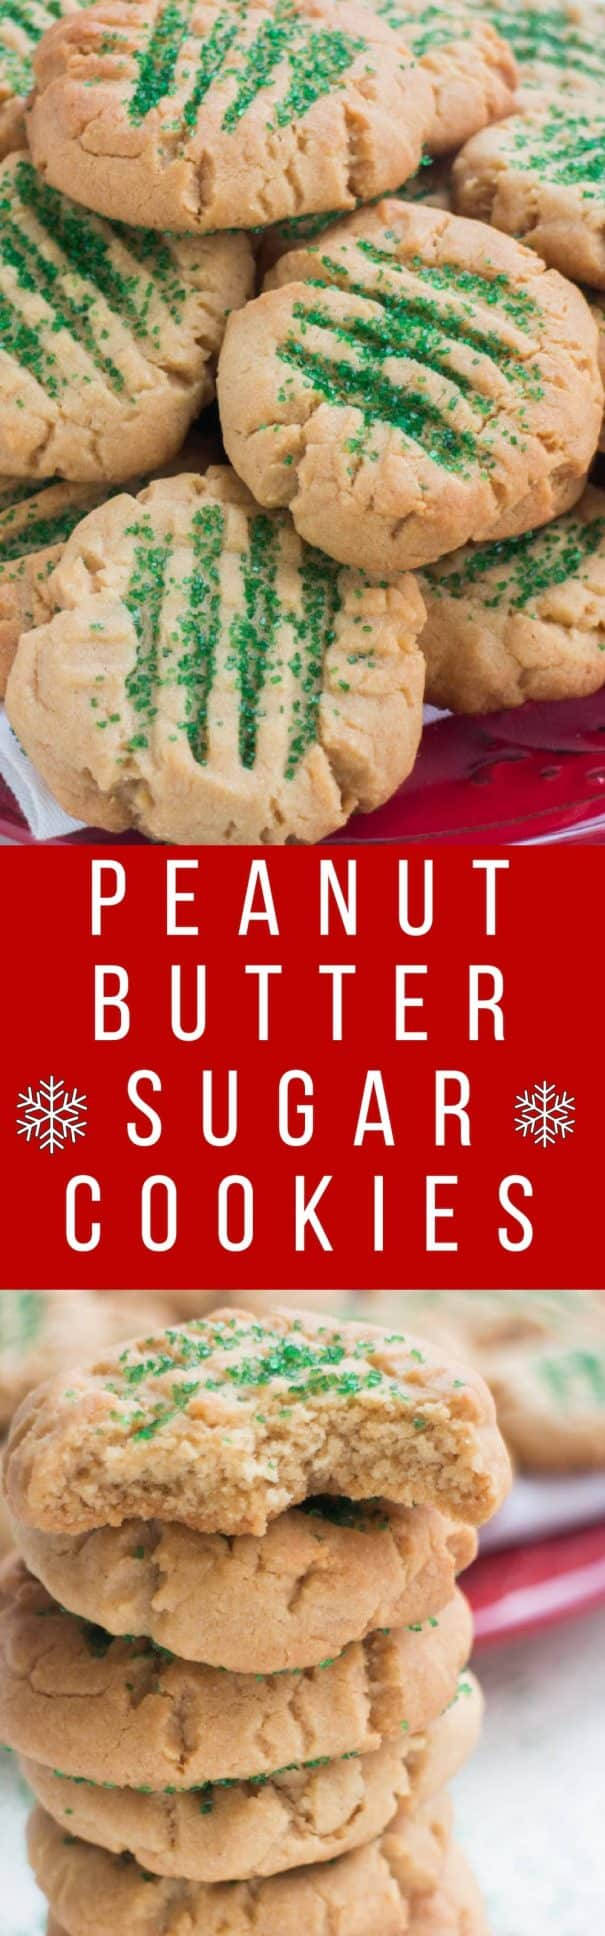 Easy Peanut Butter Christmas Sugar Cookies recipe! This is a homemade cookie recipe, just like Grandma used to make! These cookies are decorated with sugar sprinkles on top! These are the best cookies for families, cookie exchanges and kids!